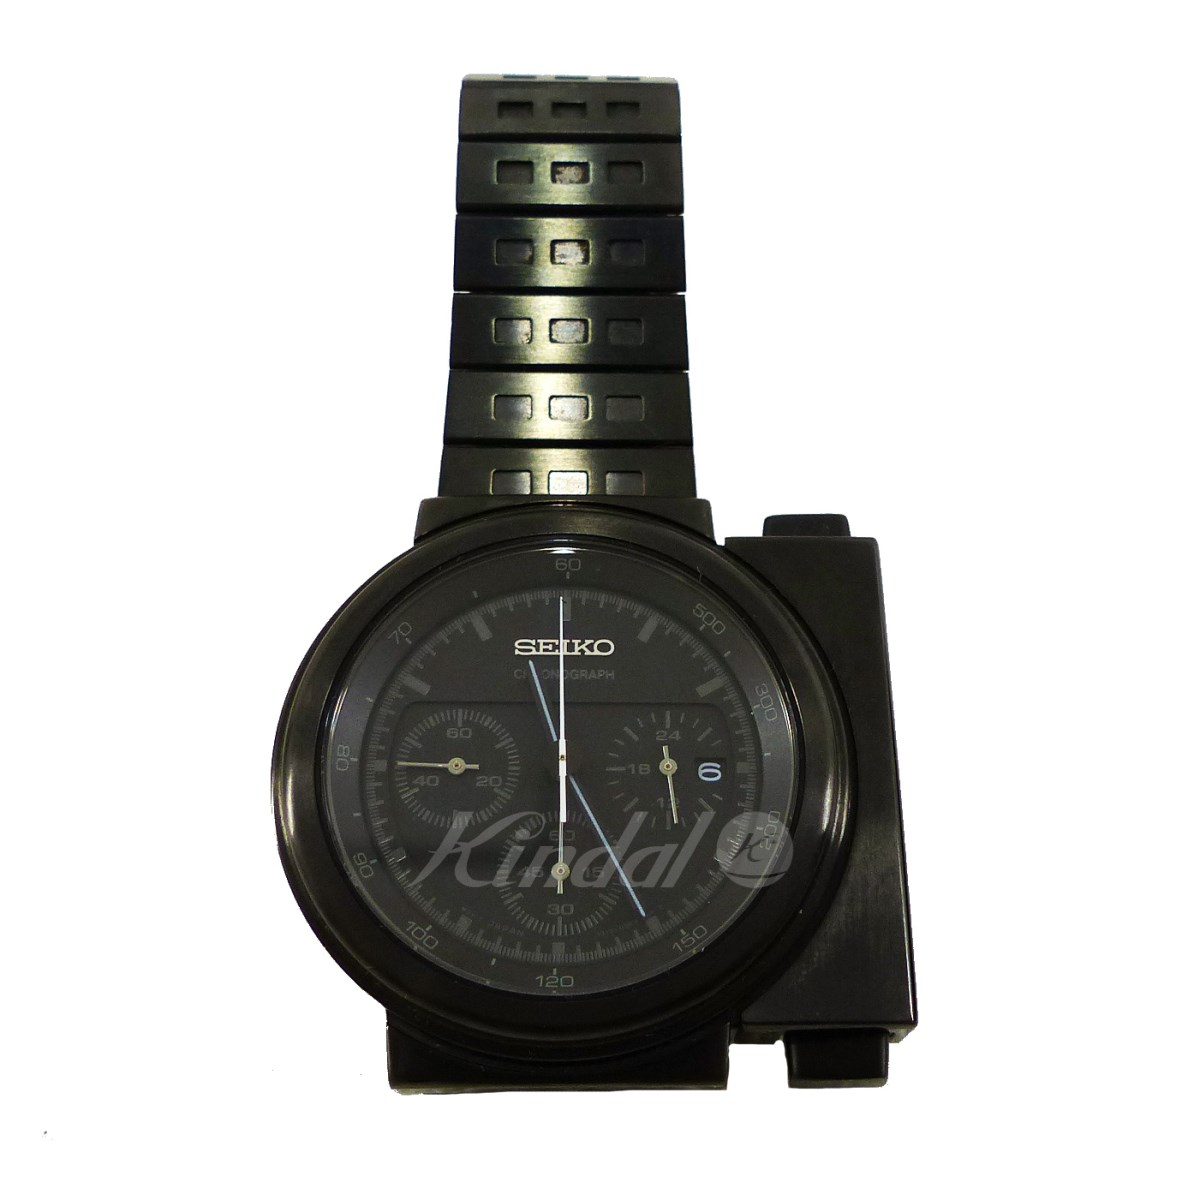 【中古】White Mountaineering×SEIKO SPIRIT SMART 腕時計 【送料無料】 【122529】 【KIND1550】